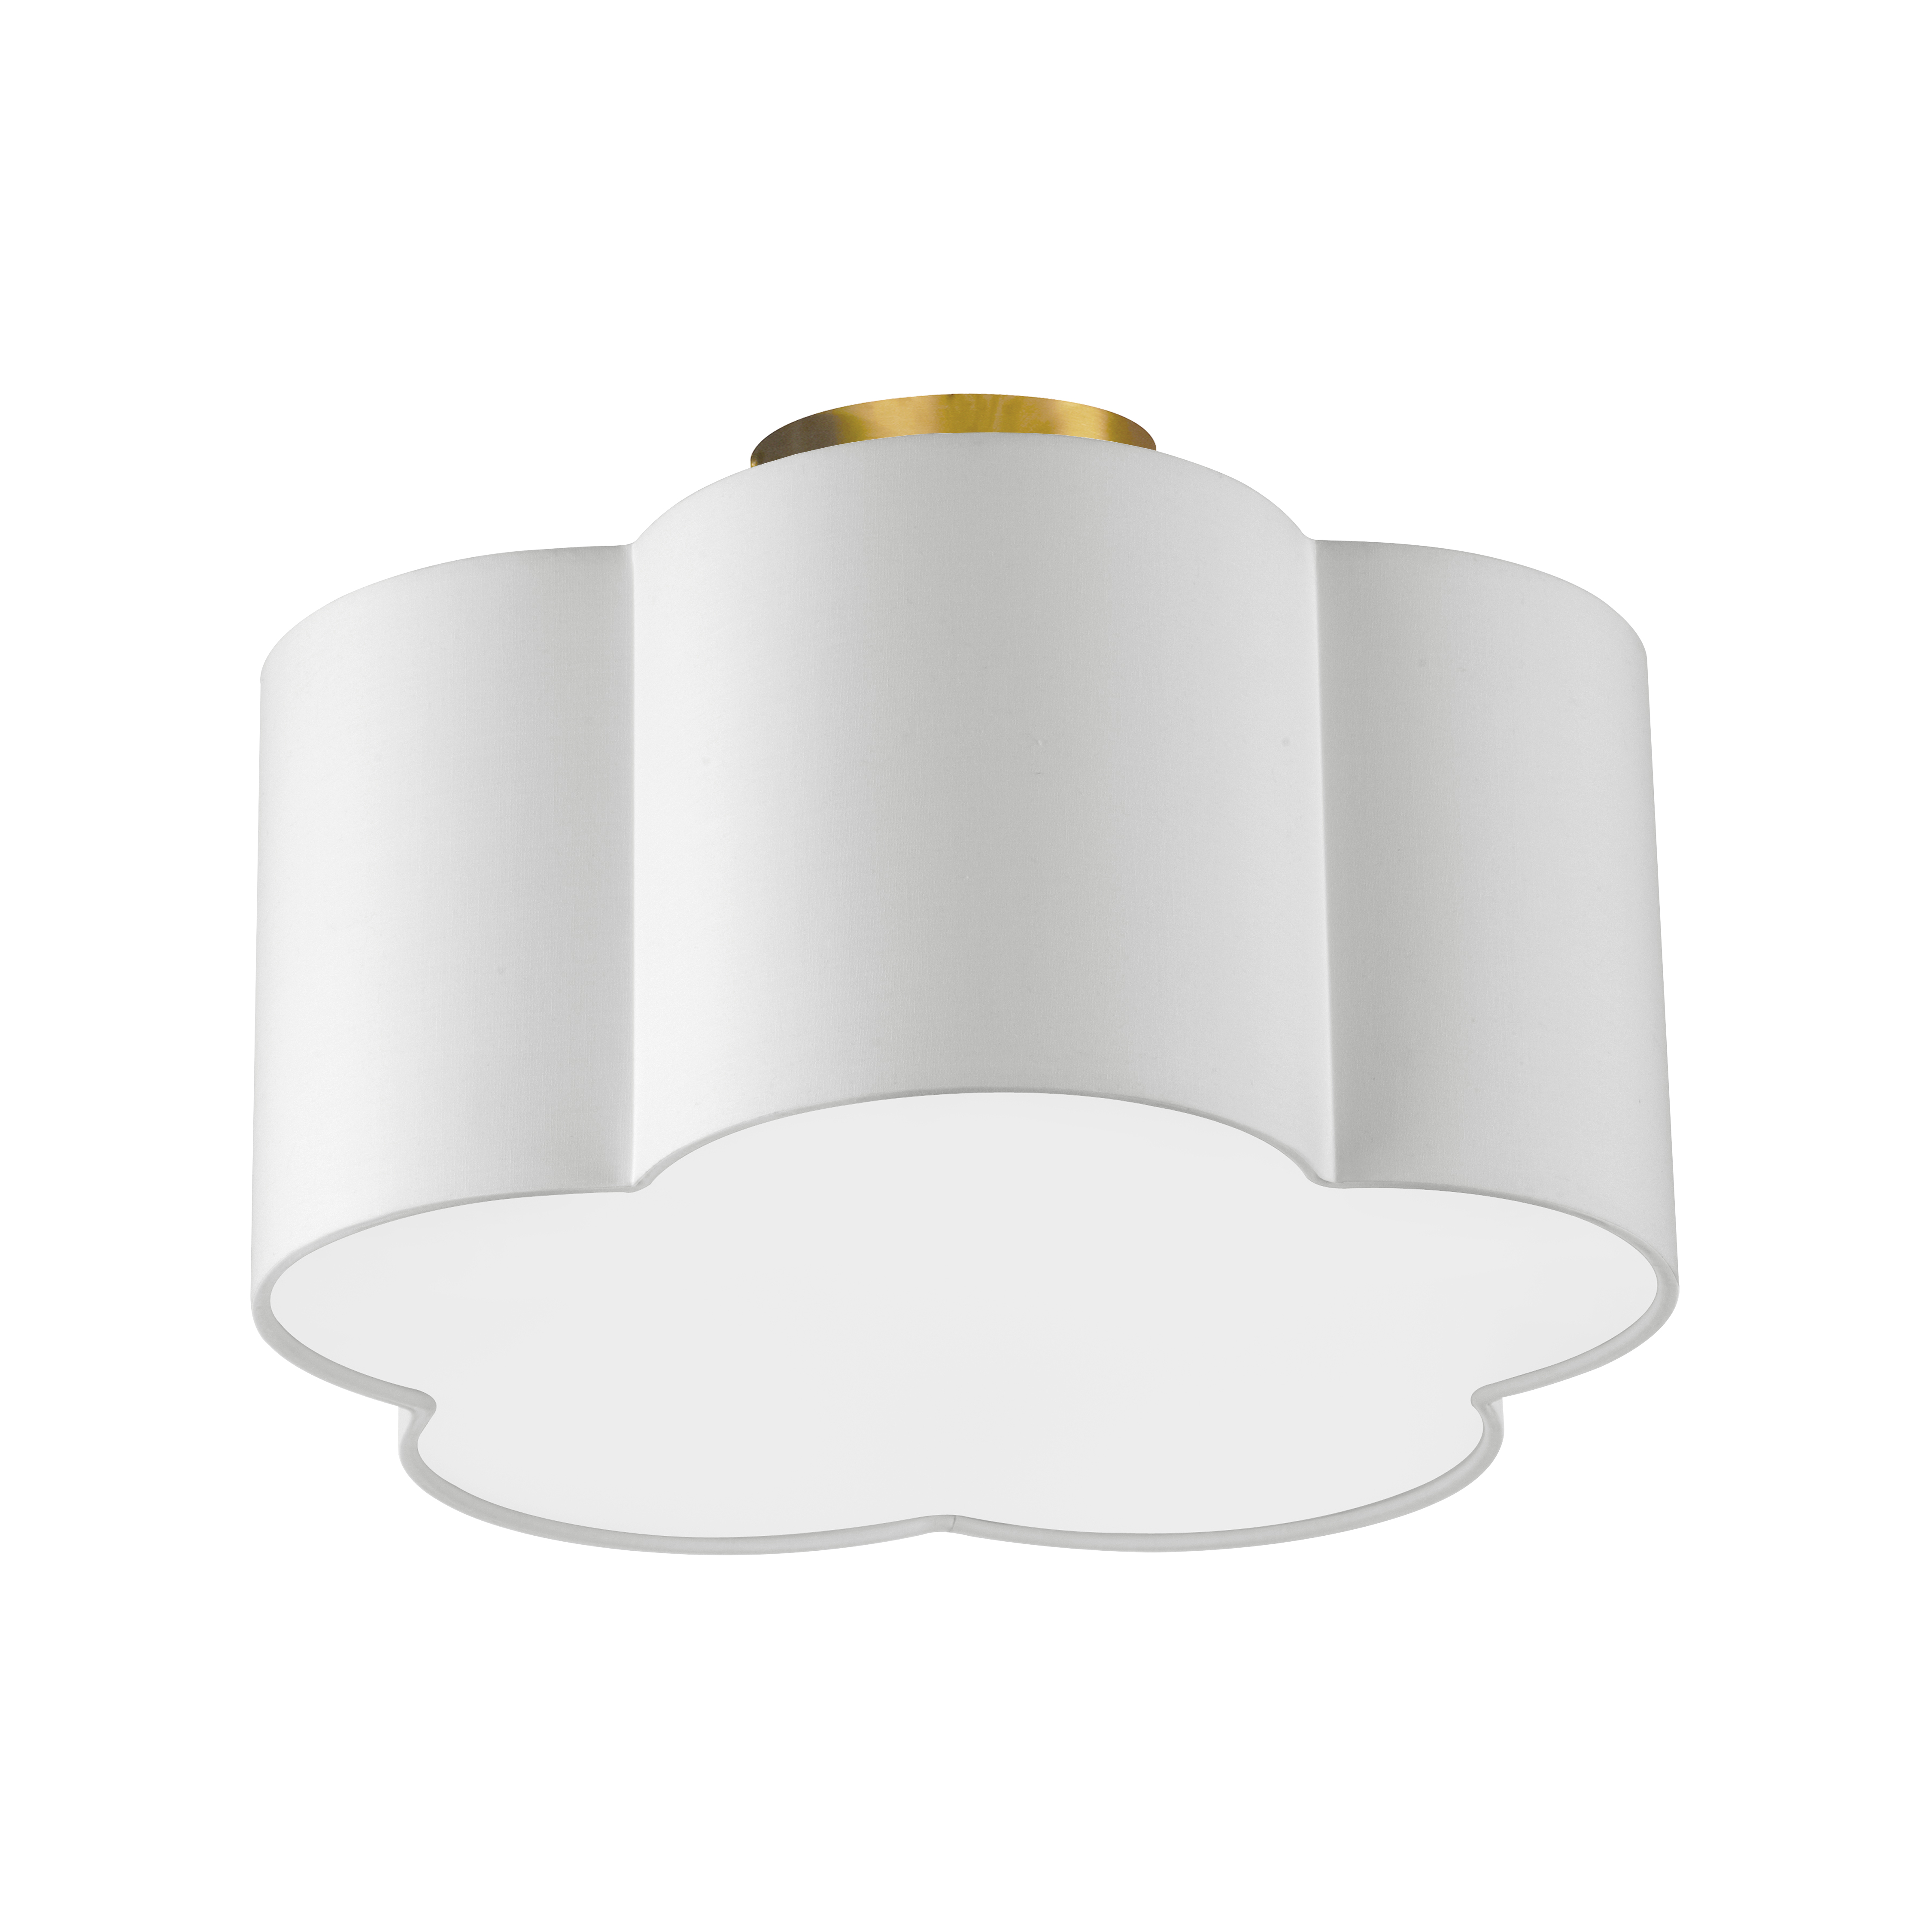 2LT Incandescent Flush Mount, AGB w/ White Shade